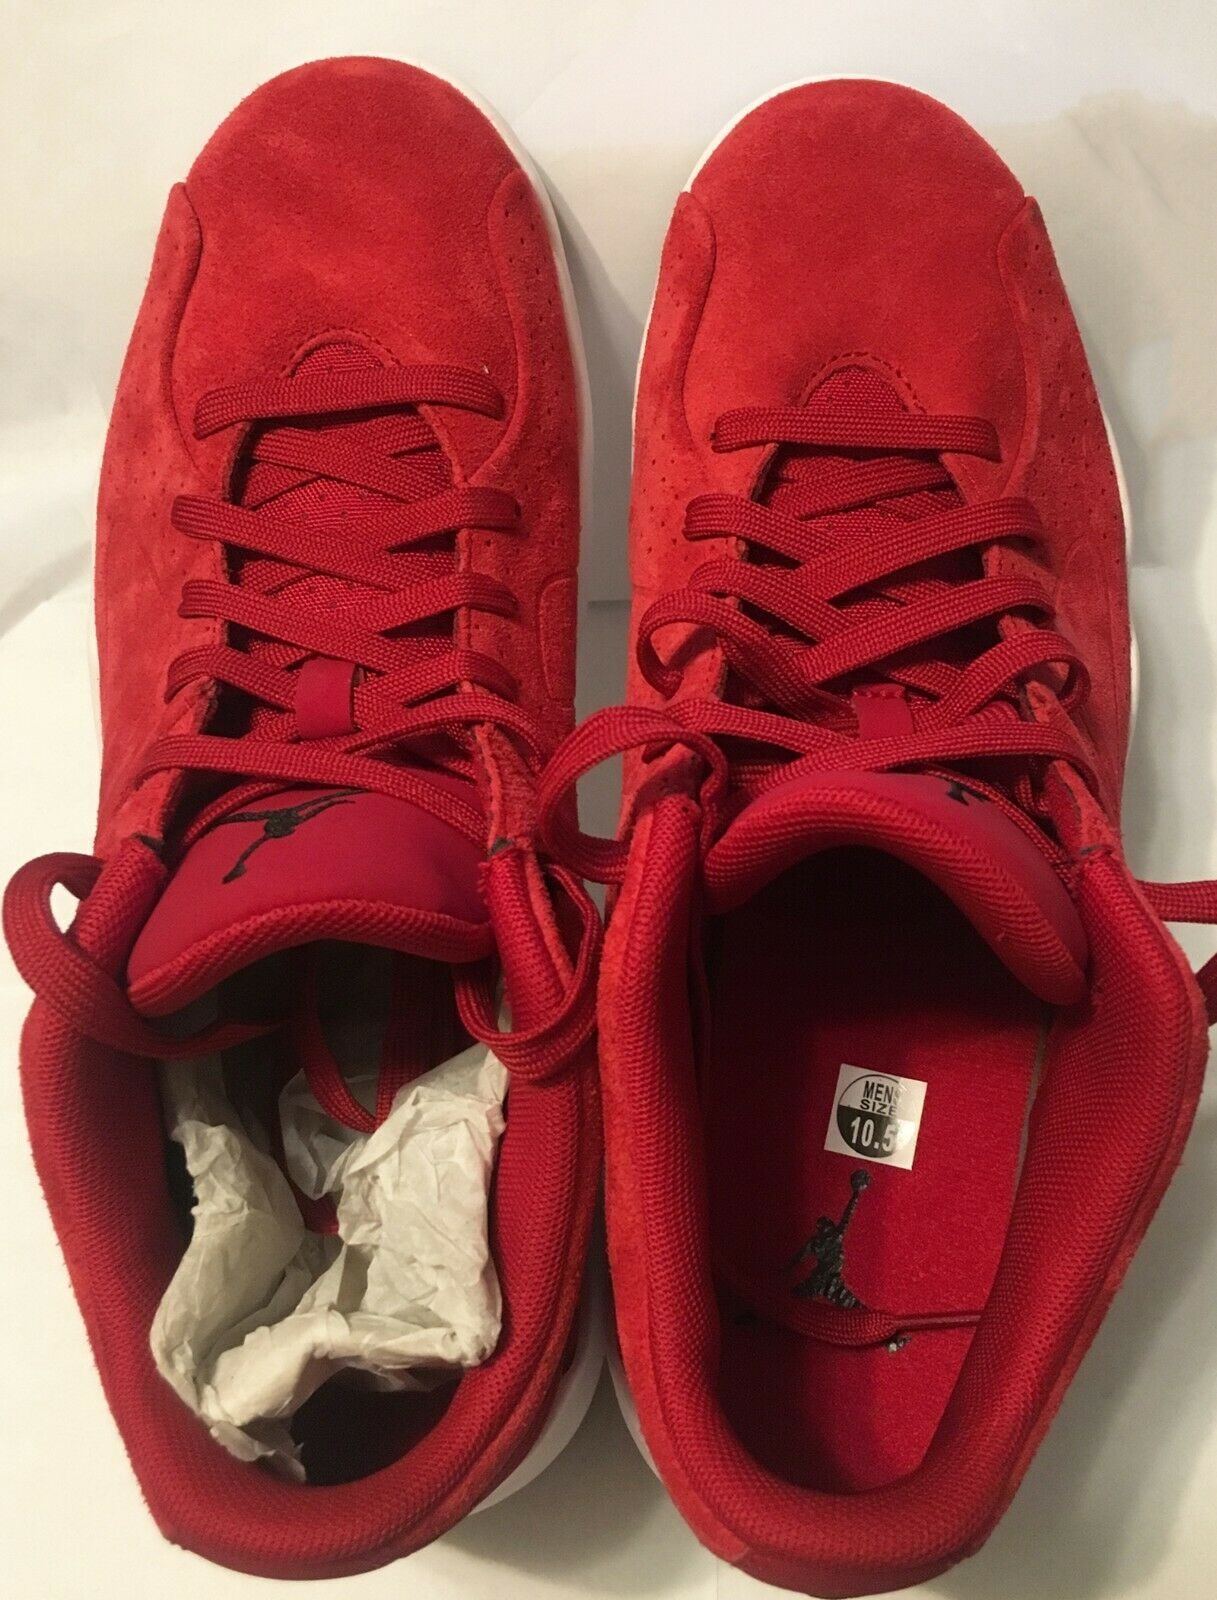 Jordan Men's shoes Red New without Box US 10.5